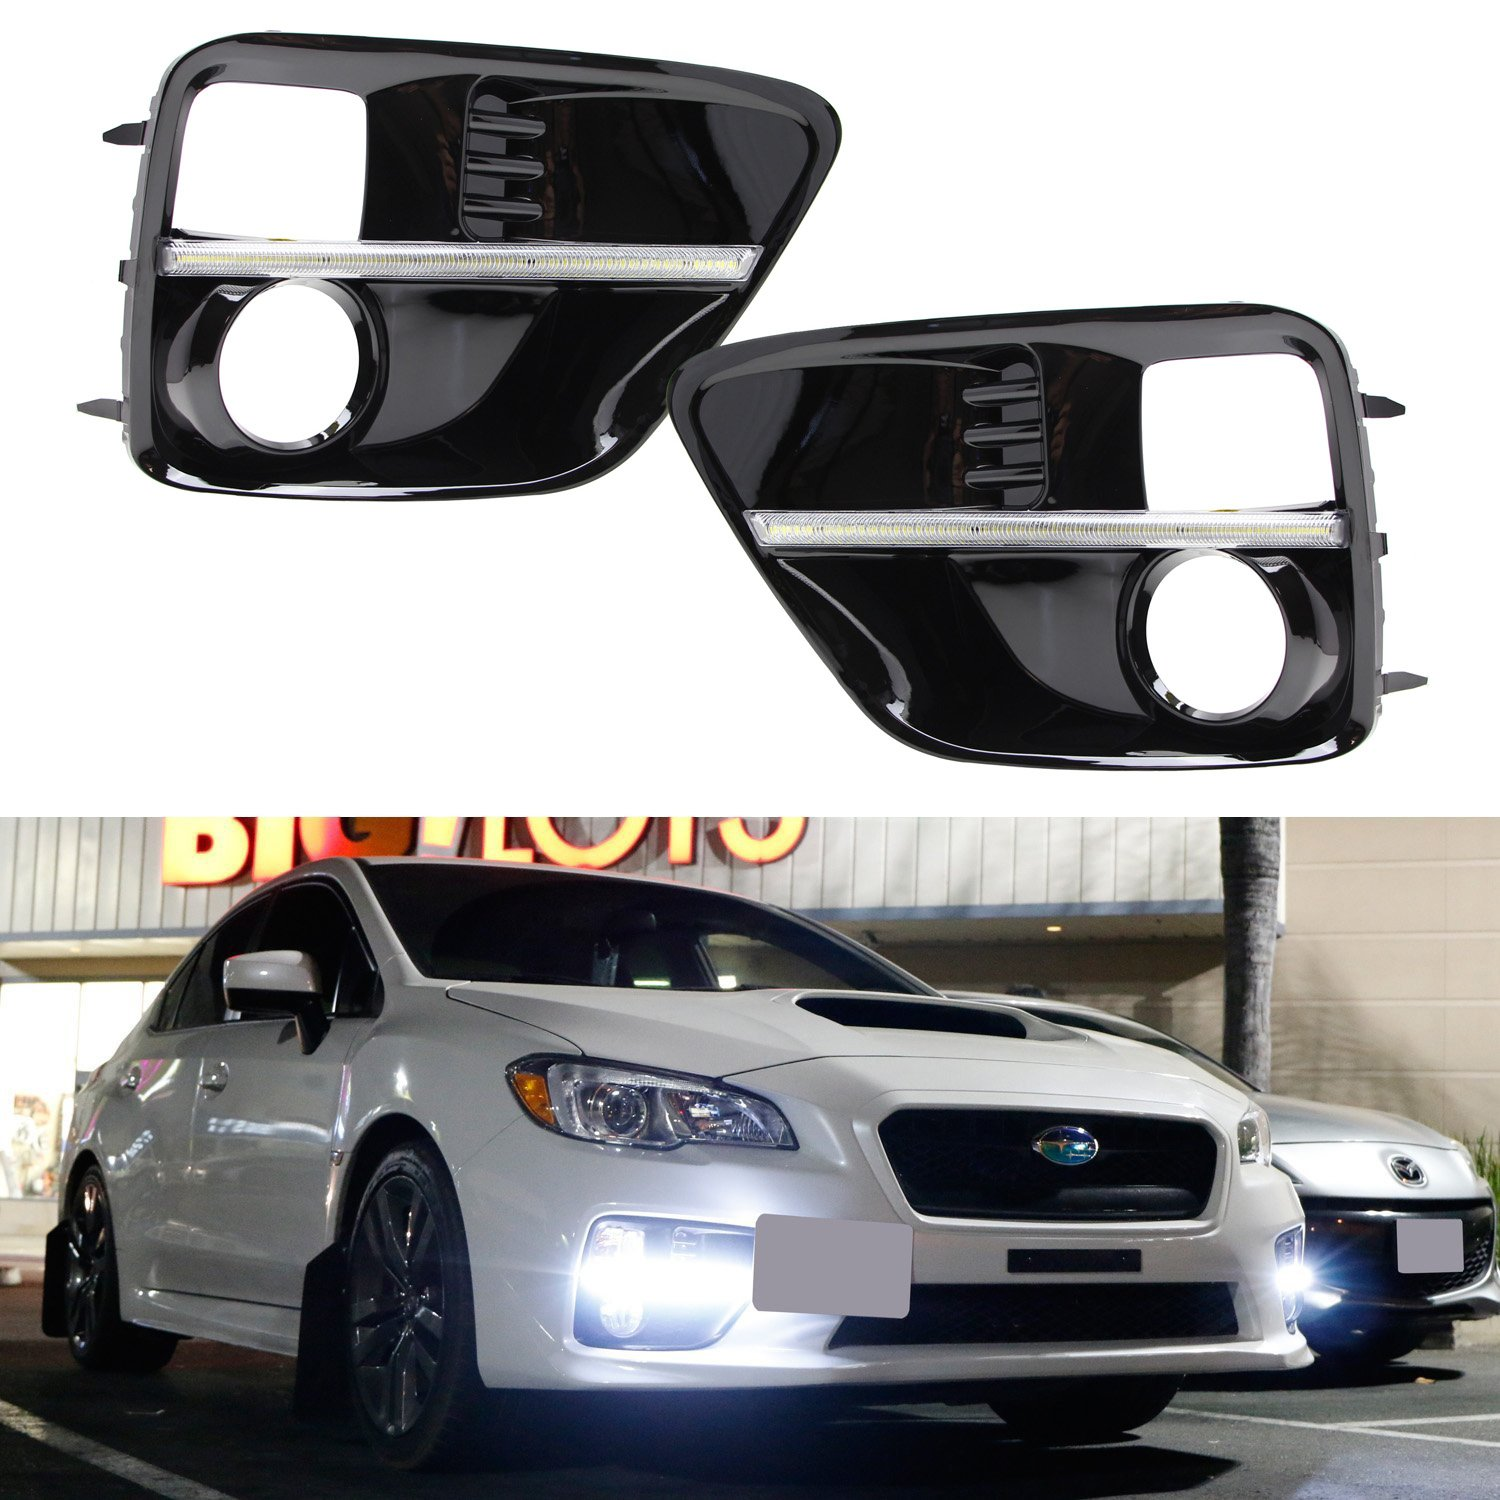 iJDMTOY JDM Style Piano Black Finish LED Daytime Running Lights, LED DRL Fog Lamp Bezel Covers For 2015-2017 Subaru WRX/STI, Xenon White